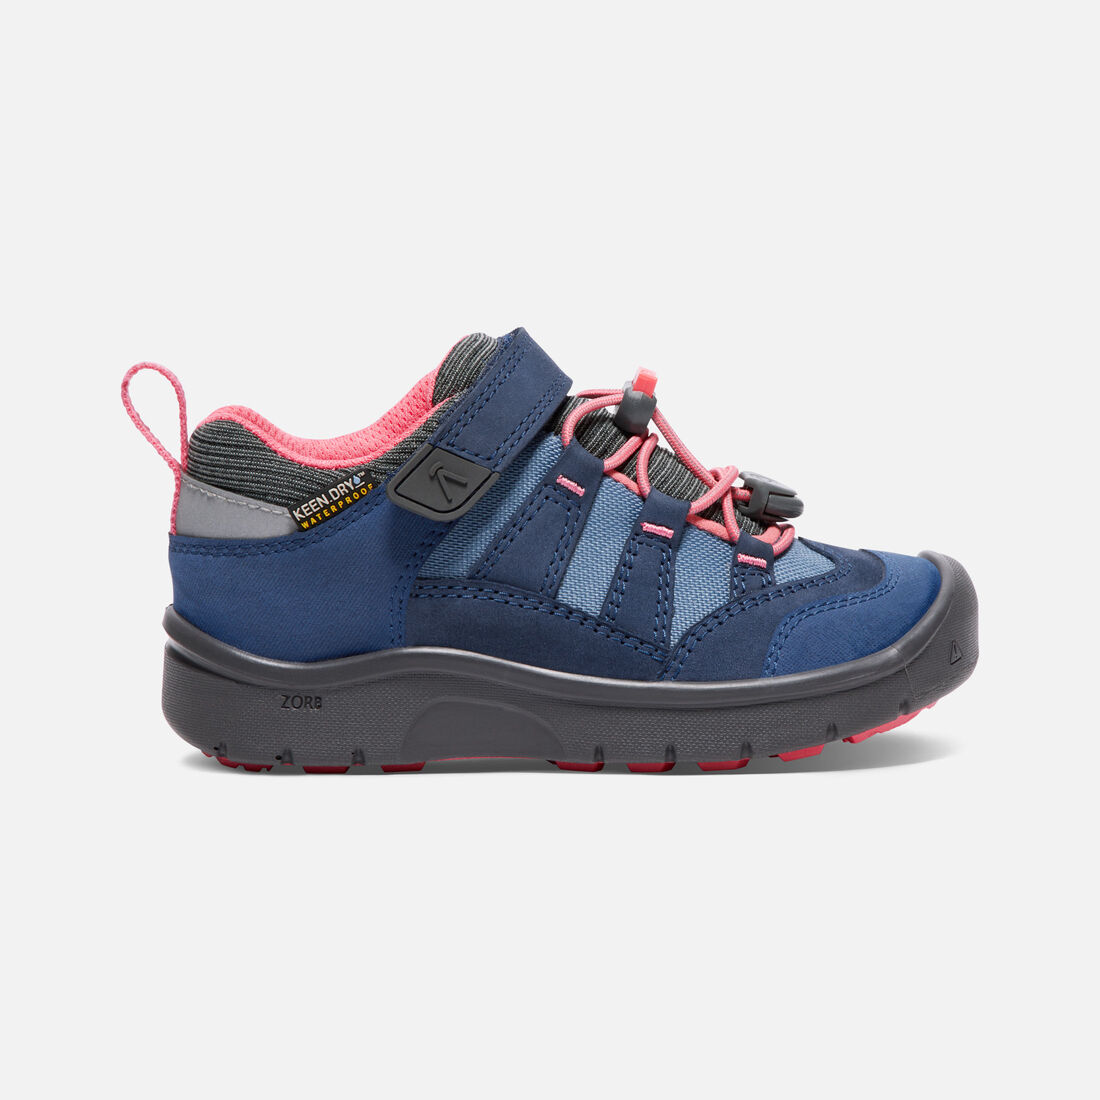 Little Kids' HIKEPORT Waterproof in Dress Blues/Sugar Coral - large view.